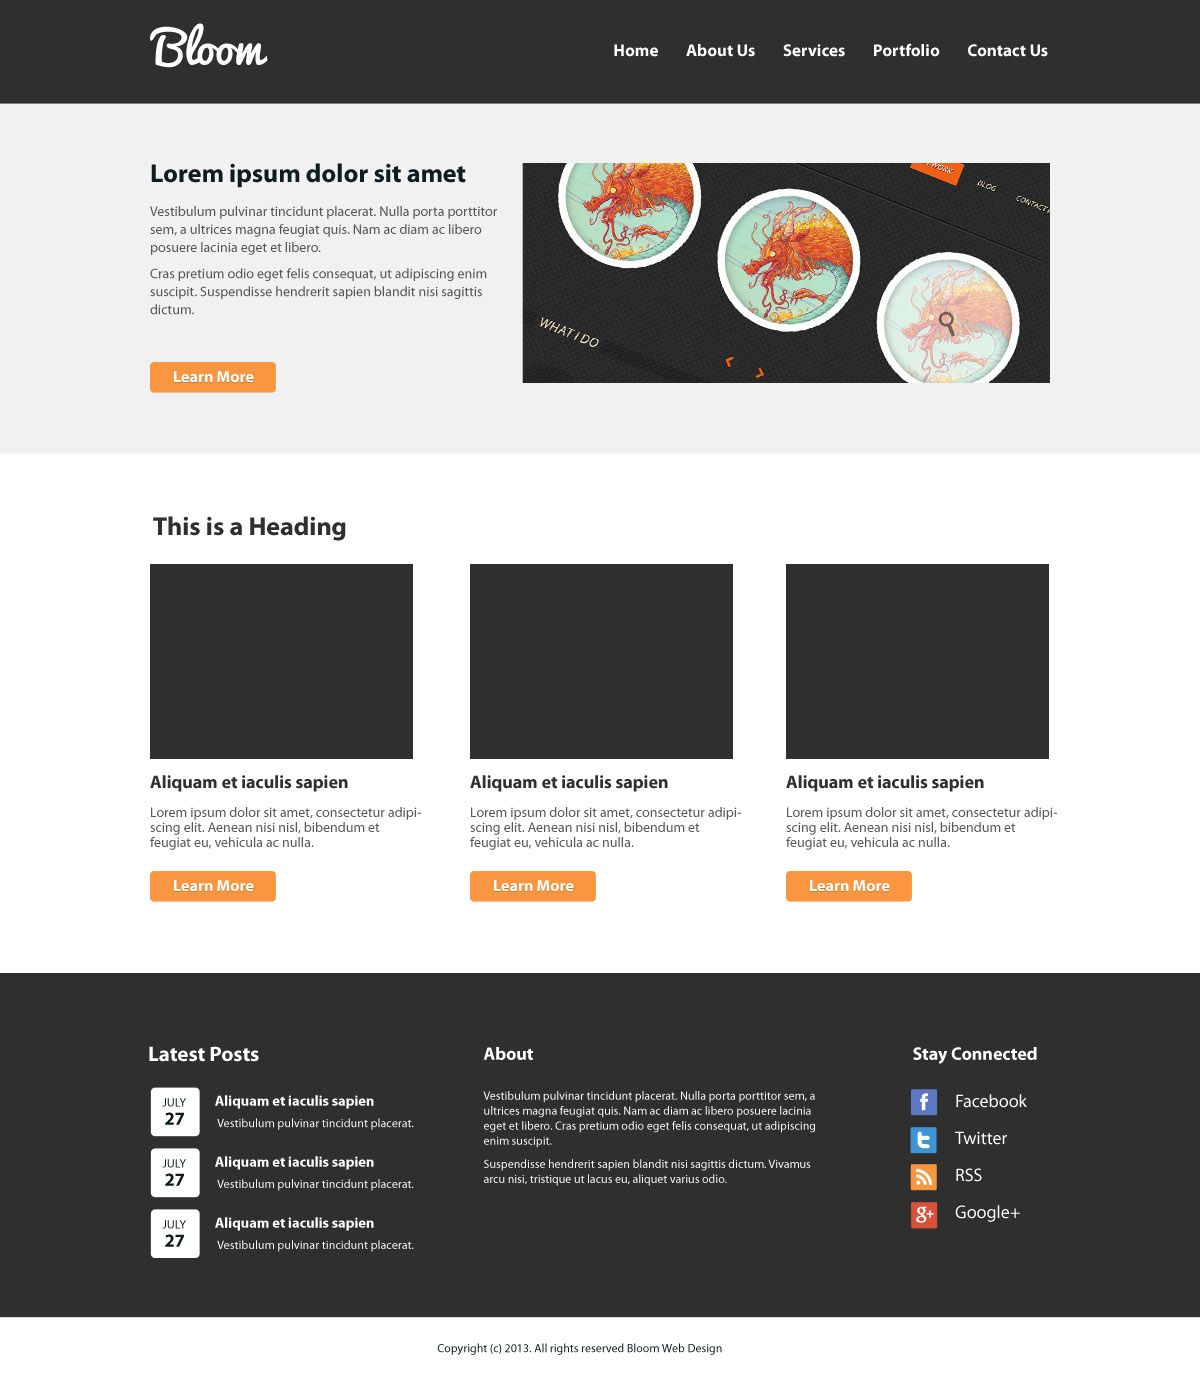 Create a clean website layout psd to htmlcss tutorial website welcome to part 1 of create a clean psd to htmlcss website layout tutorial baditri Image collections